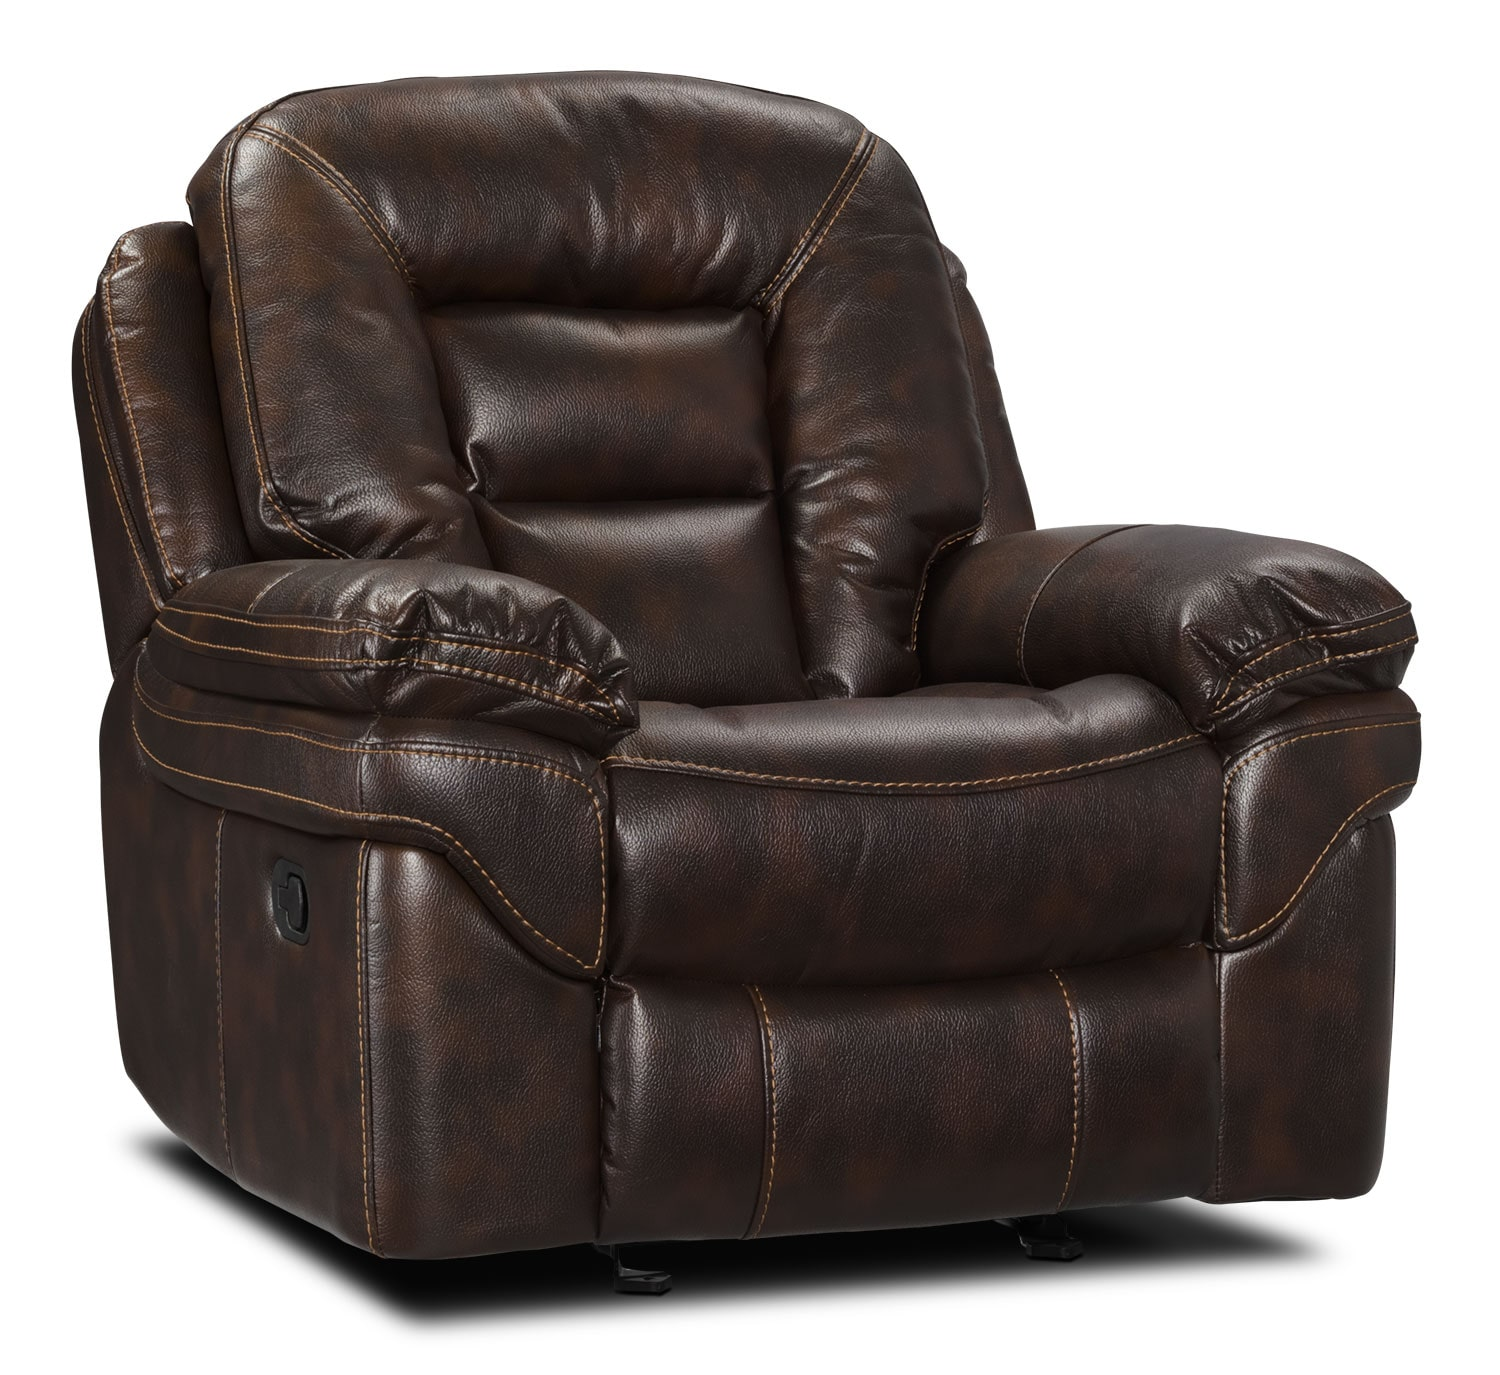 Living Room Furniture - Leo Leathaire Recliner - Walnut